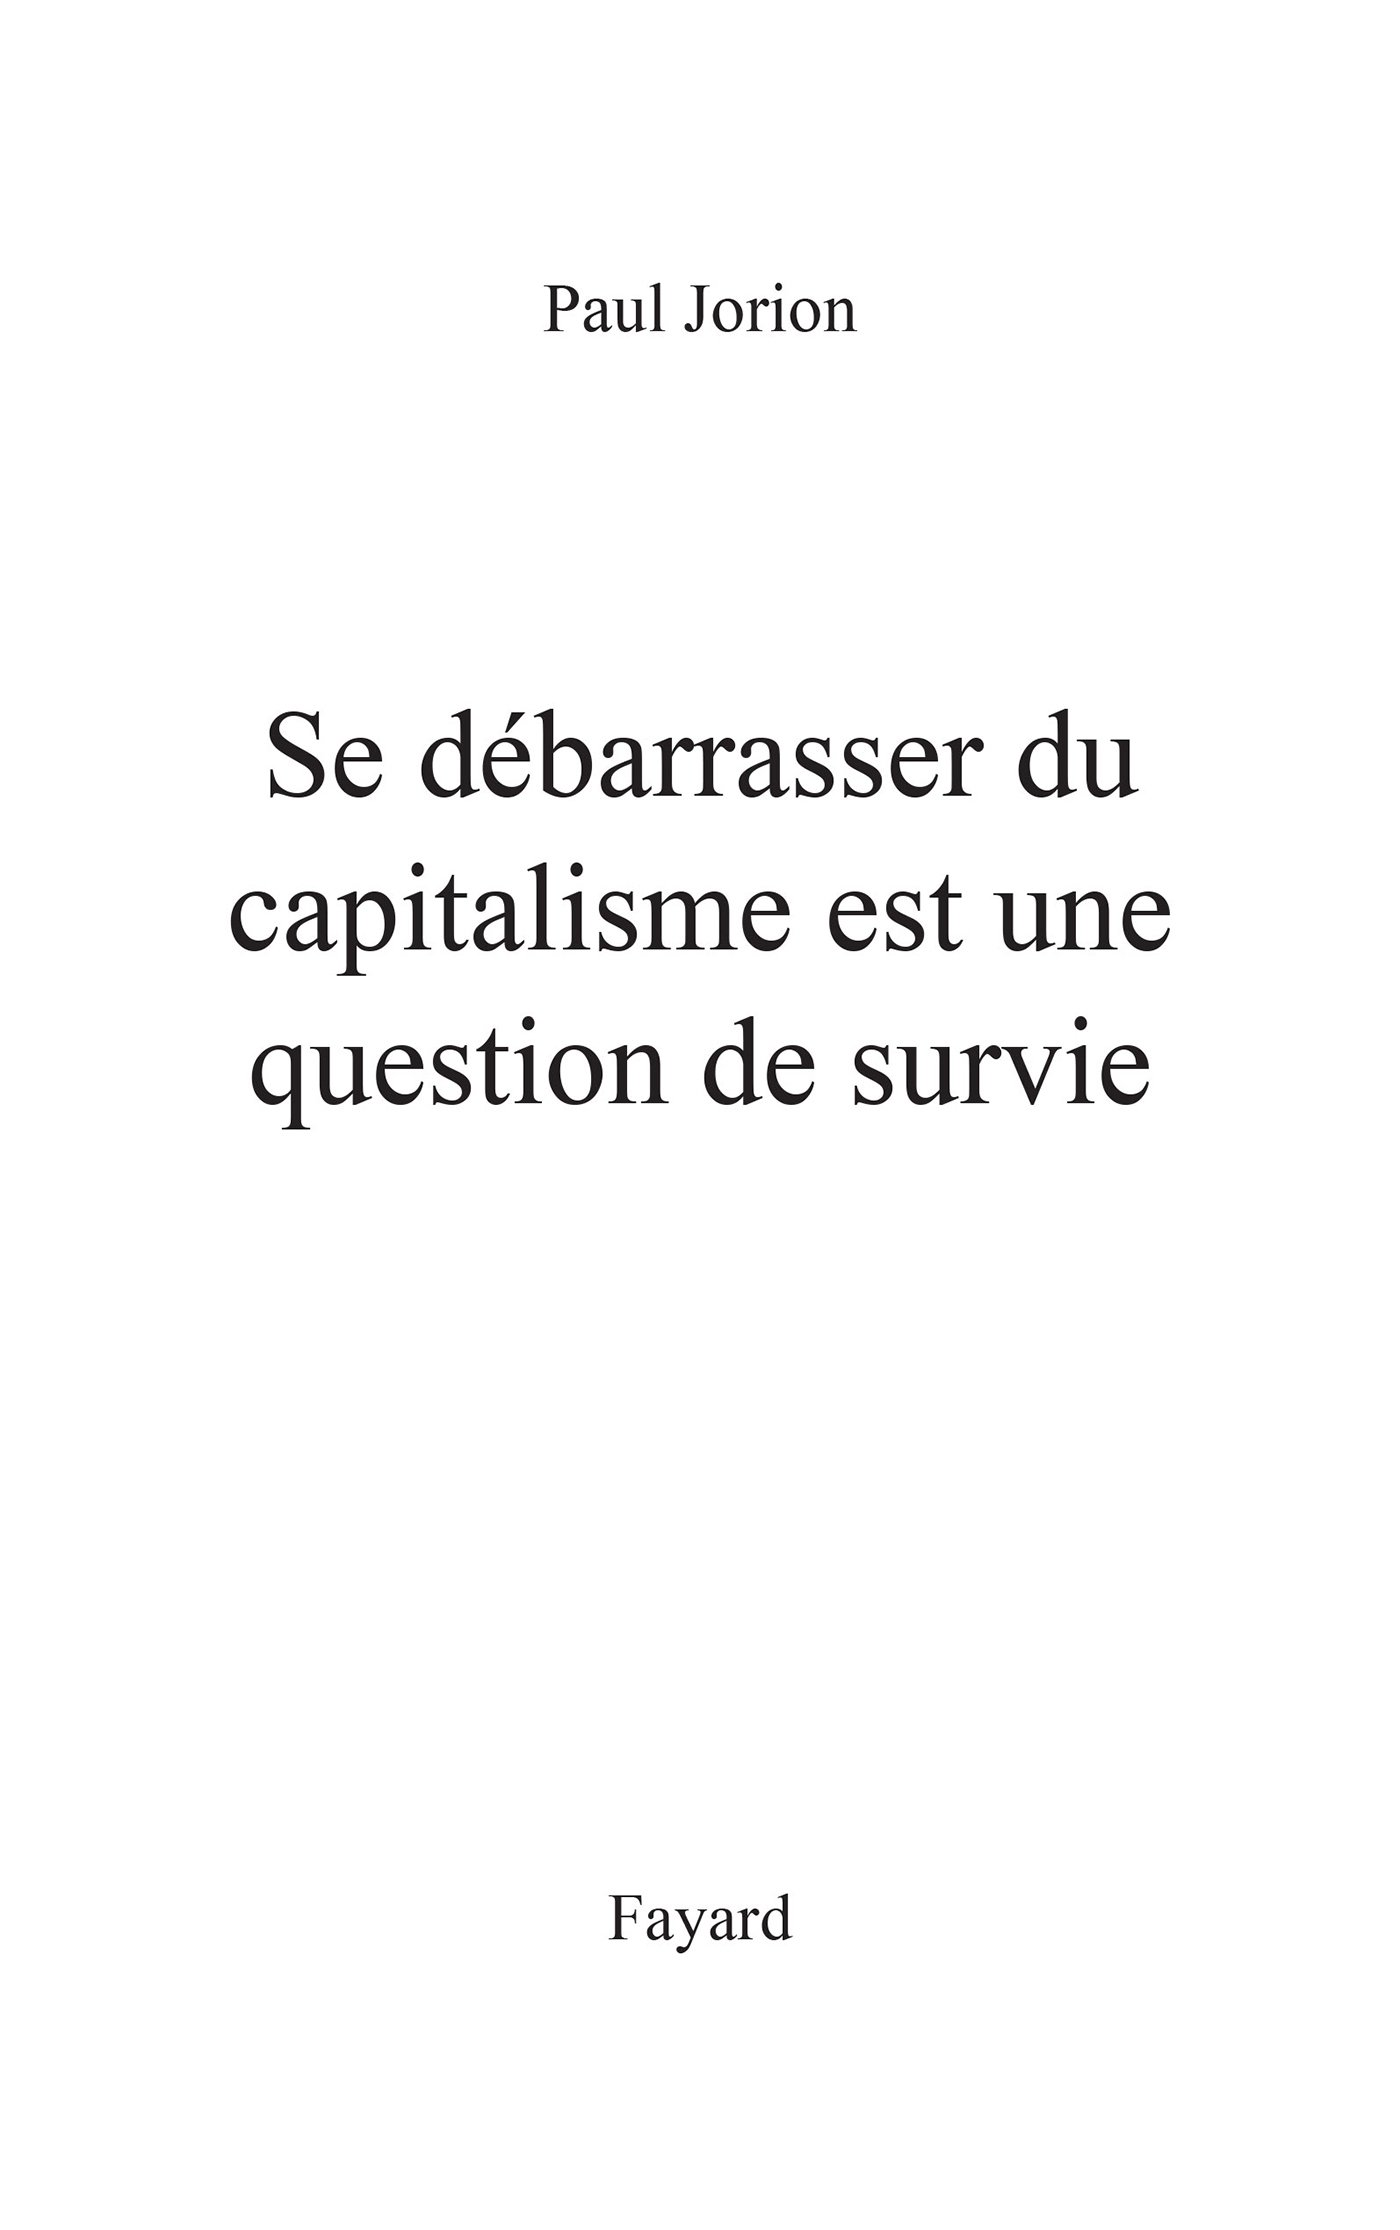 Page de titre : Paul Jorion,  Se débarrasser du capitalisme est une question de survie,  Fayard